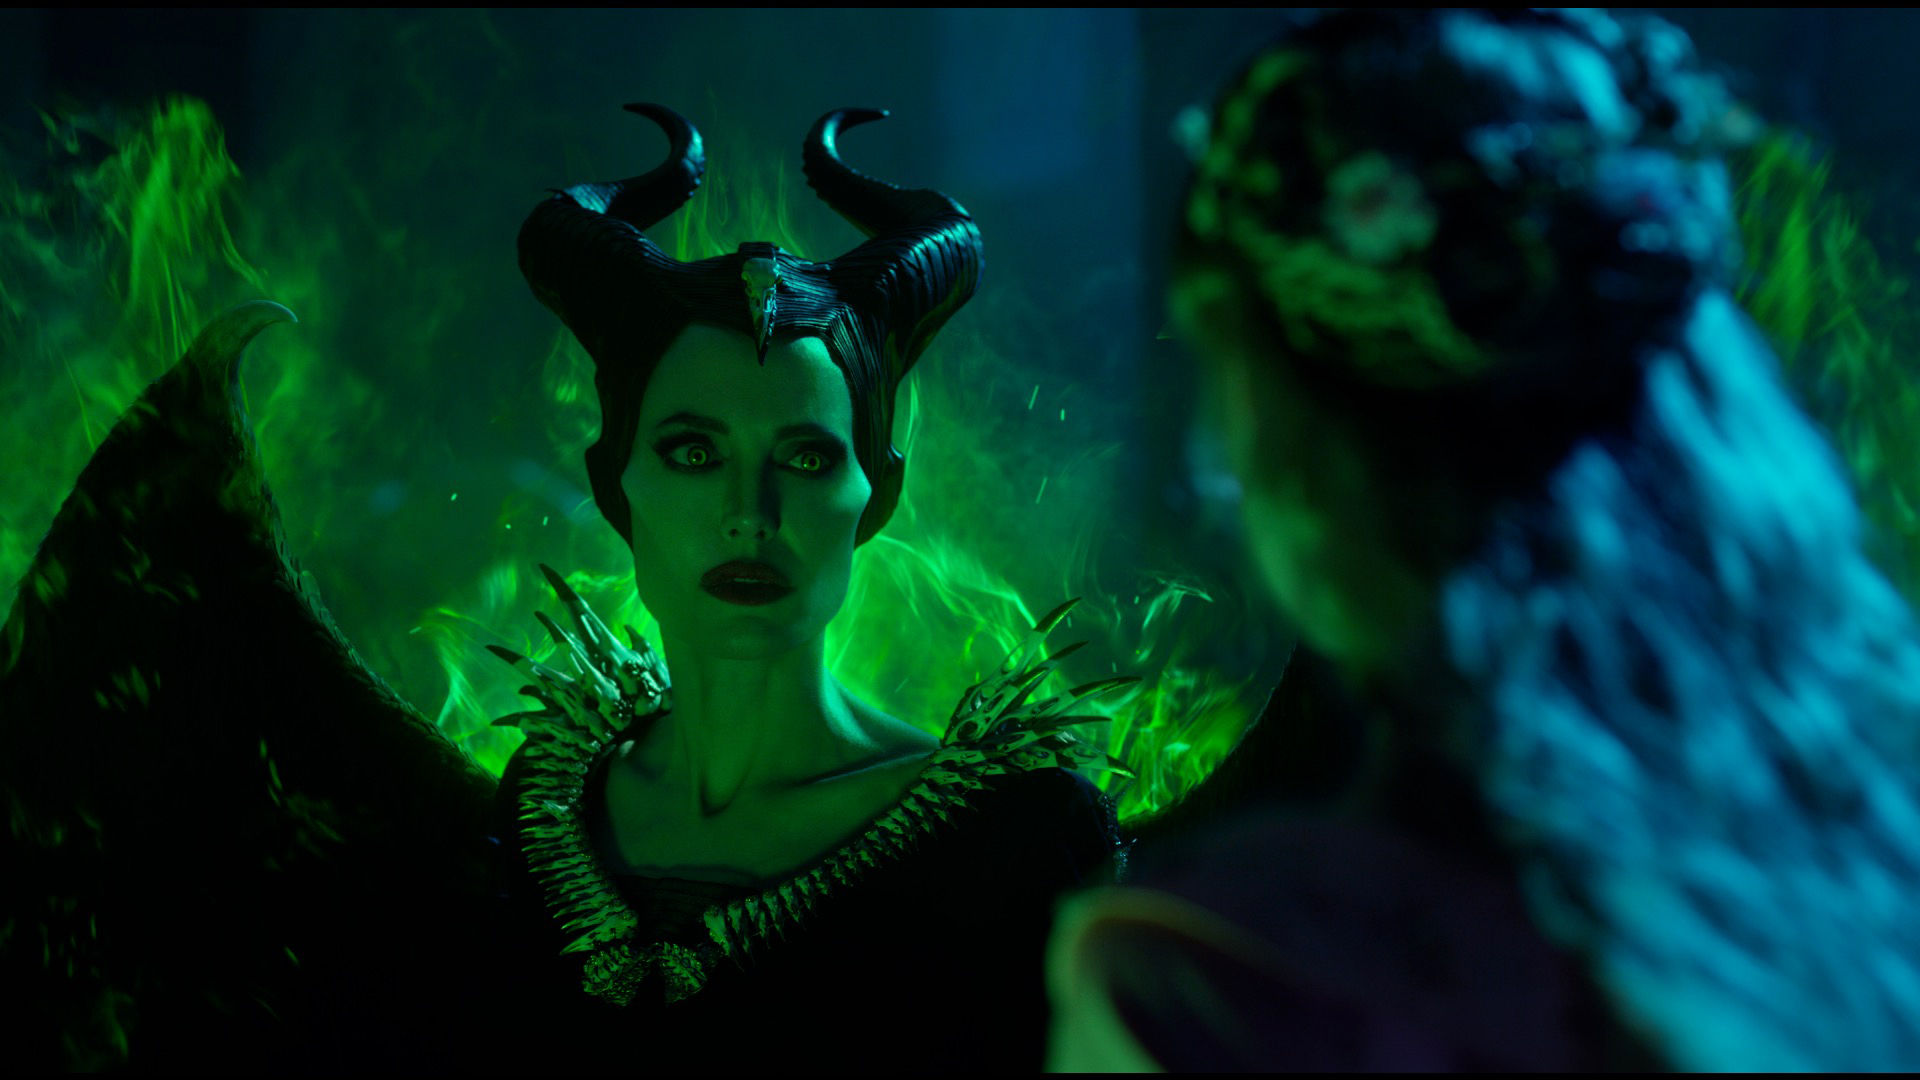 Watch the New Teaser Trailer for Maleficent: Mistress of Evil- in Theaters 10/18 #Maleficent